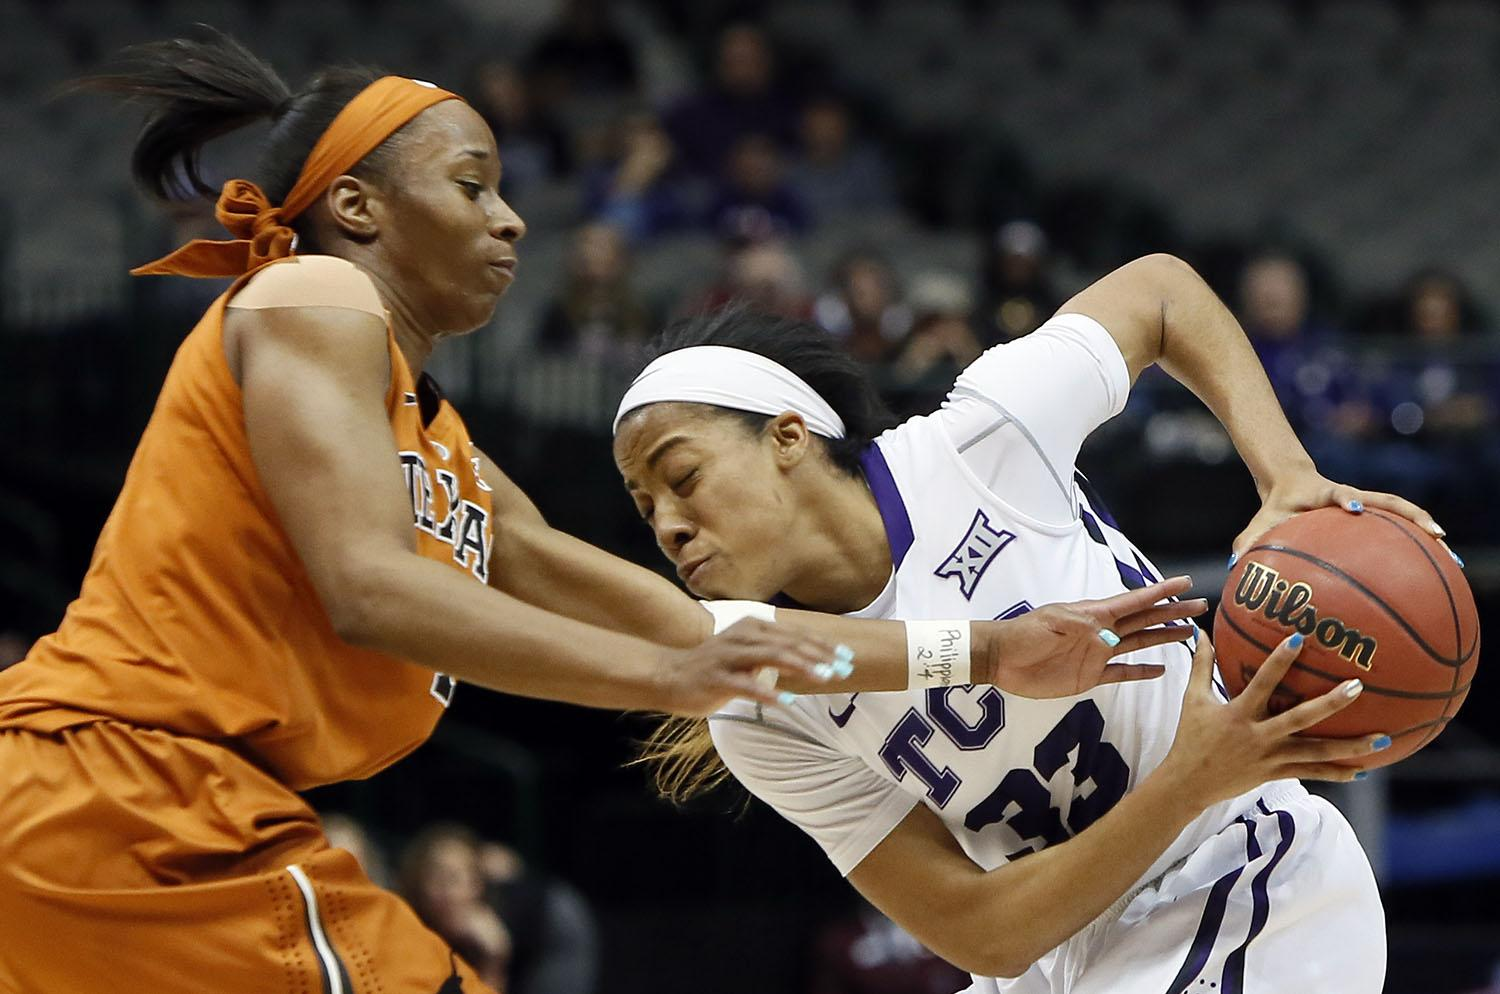 TCU guard Donielle Breaux (33) battles Texas guard Empress Davenport (1) for space during the first half of an NCAA college basketball game in the quarterfinals of the Big 12 Conference tournament, Saturday, March 7, 2015, in Dallas. Texas won 67-61. (AP Photo/Brandon Wade)